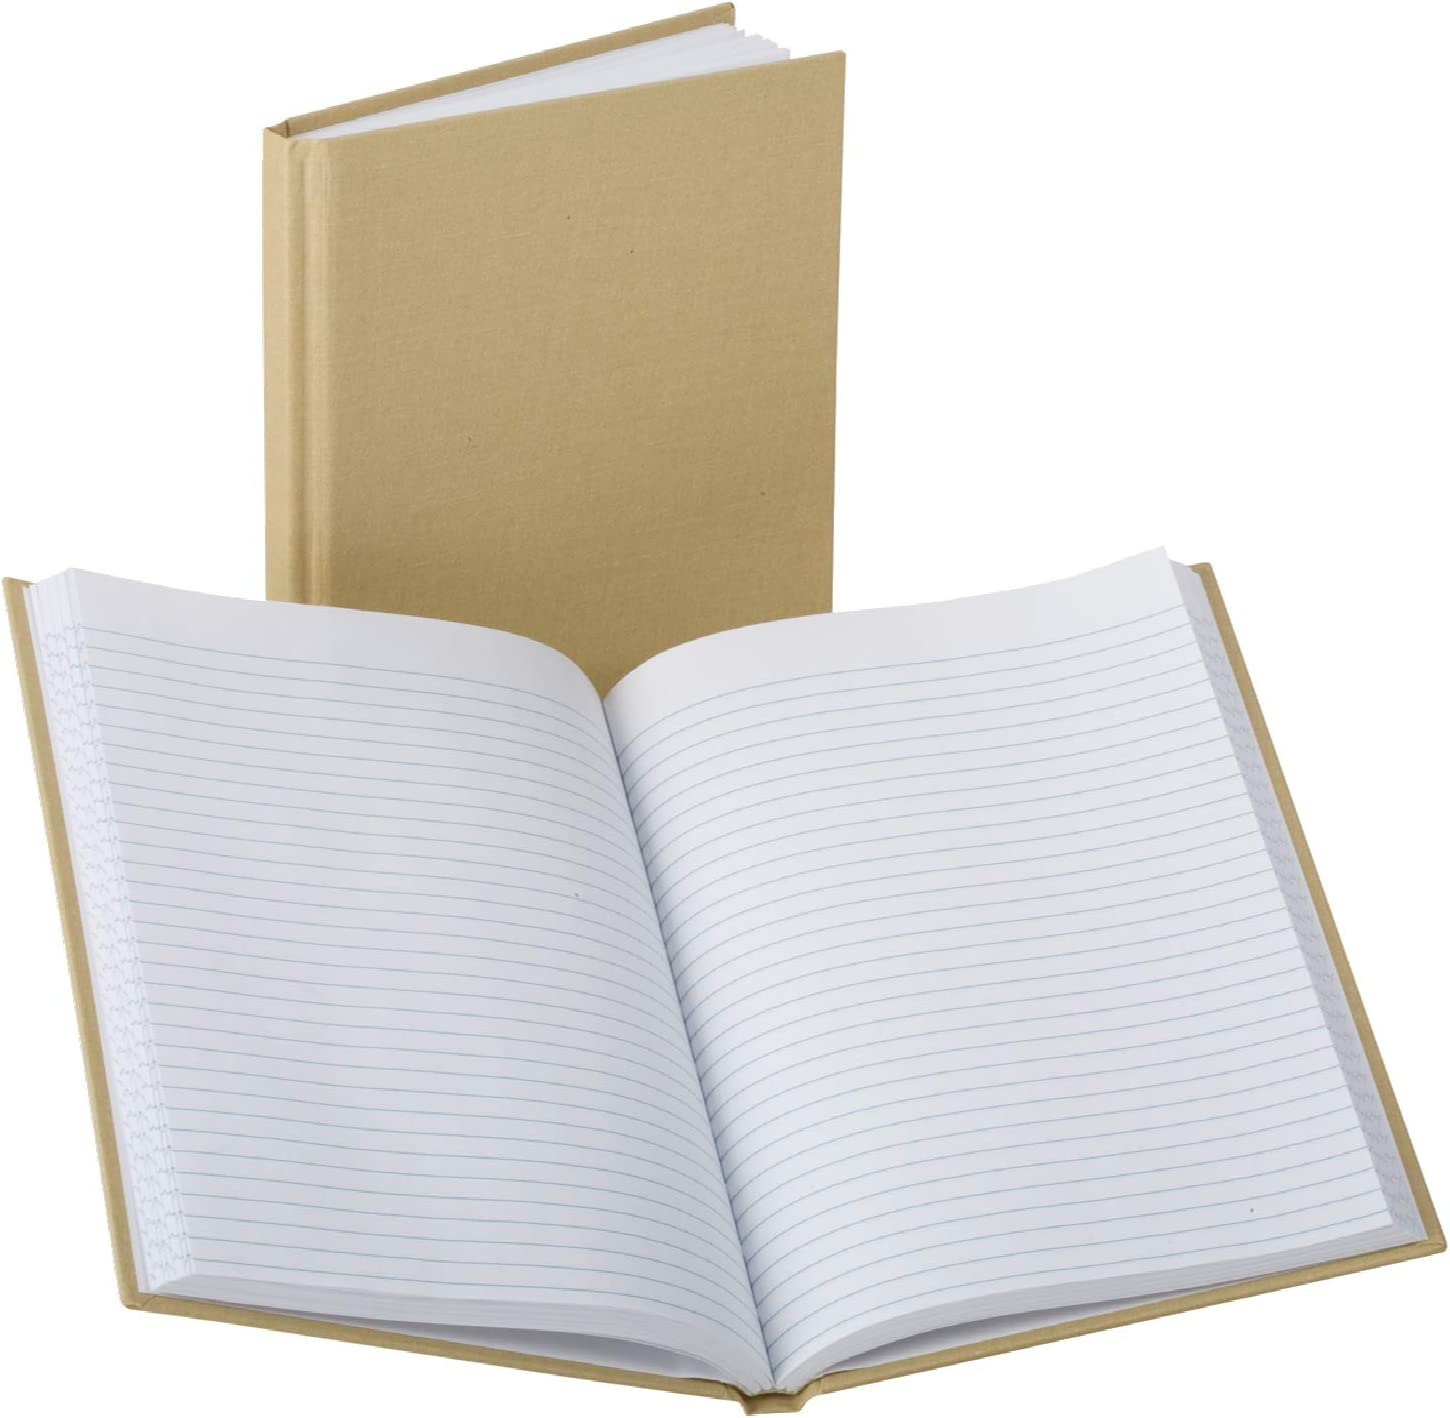 Boorum & Pease 6571 Handy Size Bound Memo Book, Ruled, 9 x 5 7/8, White, 96 Sheets